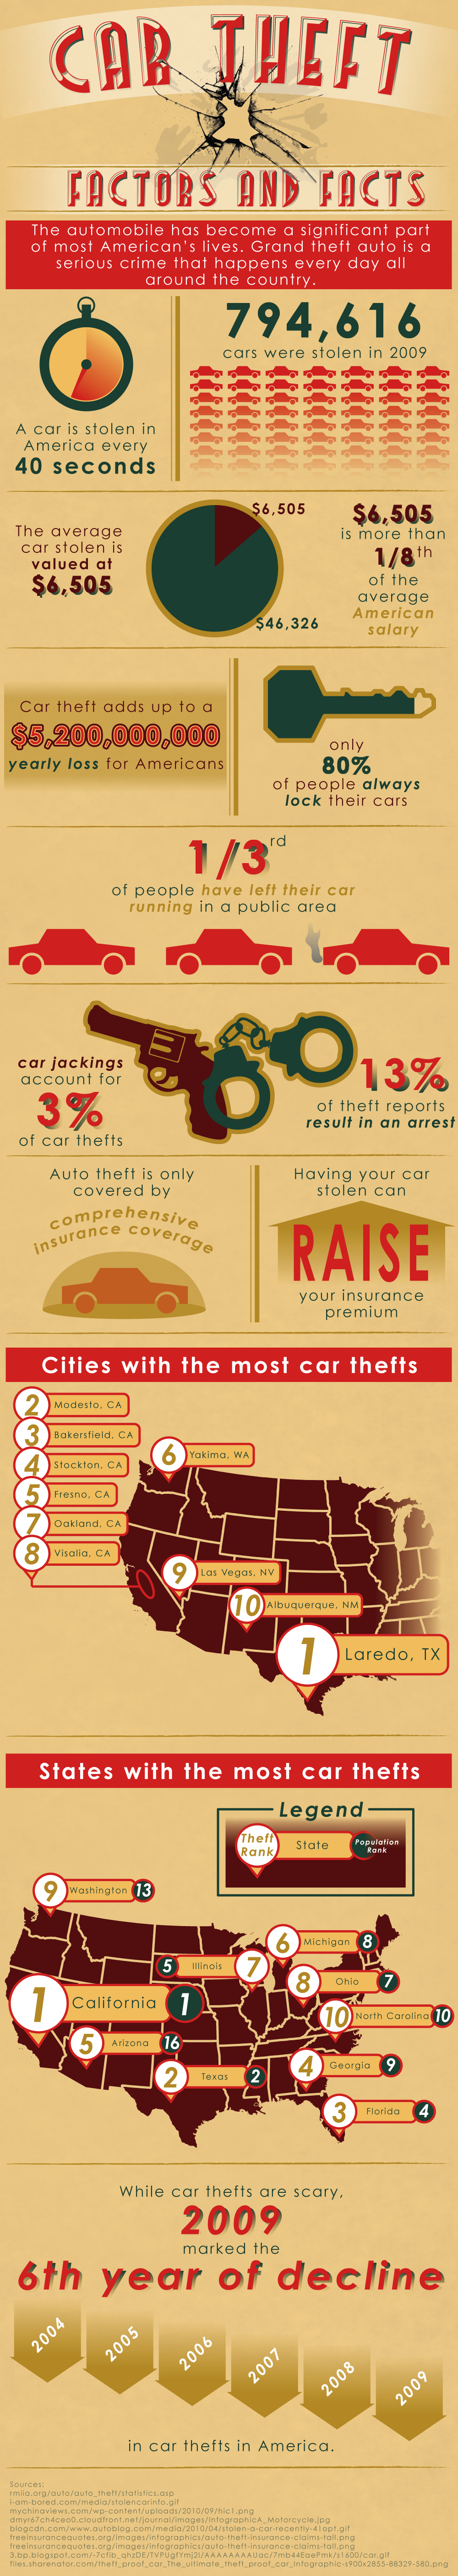 The Growing Wave Of Car Thefts In America With Images Big Car